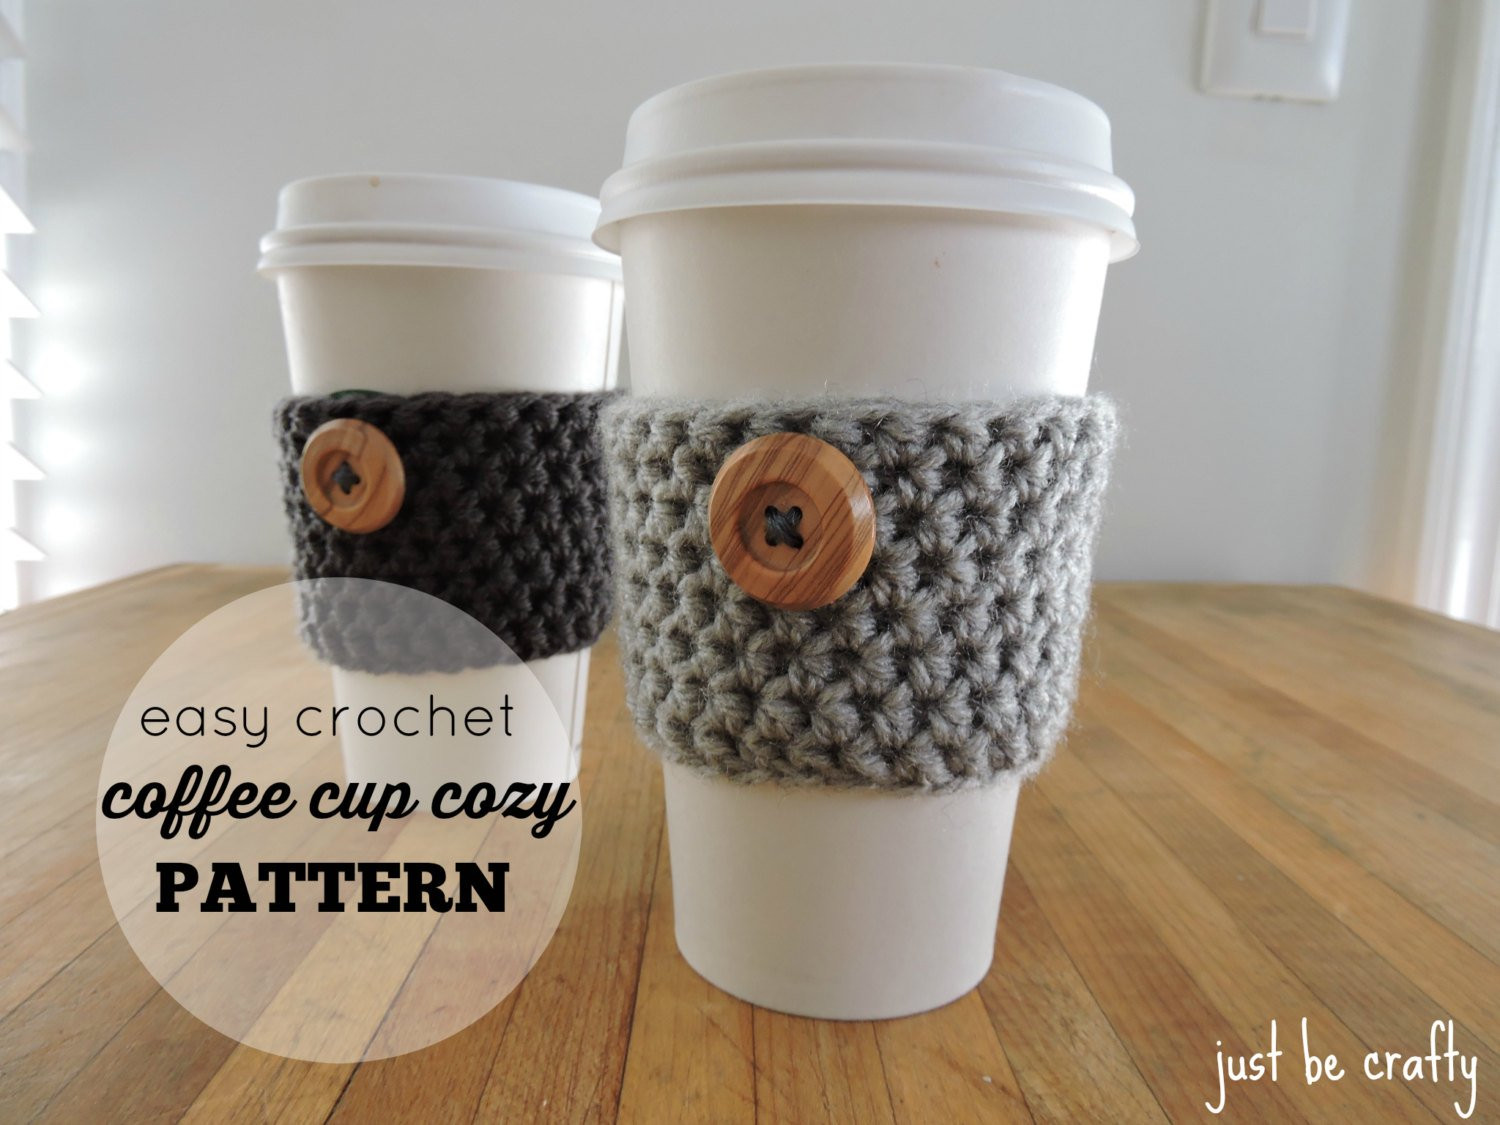 Crochet Coffee Cup Cozy Inspirational Crochet Coffee Cup Cozy Pattern Pdf Download Coffee Cup Cozy Of Crochet Coffee Cup Cozy Luxury Happy Holidays Handmade Gift Idea Crochet Heart Coffee